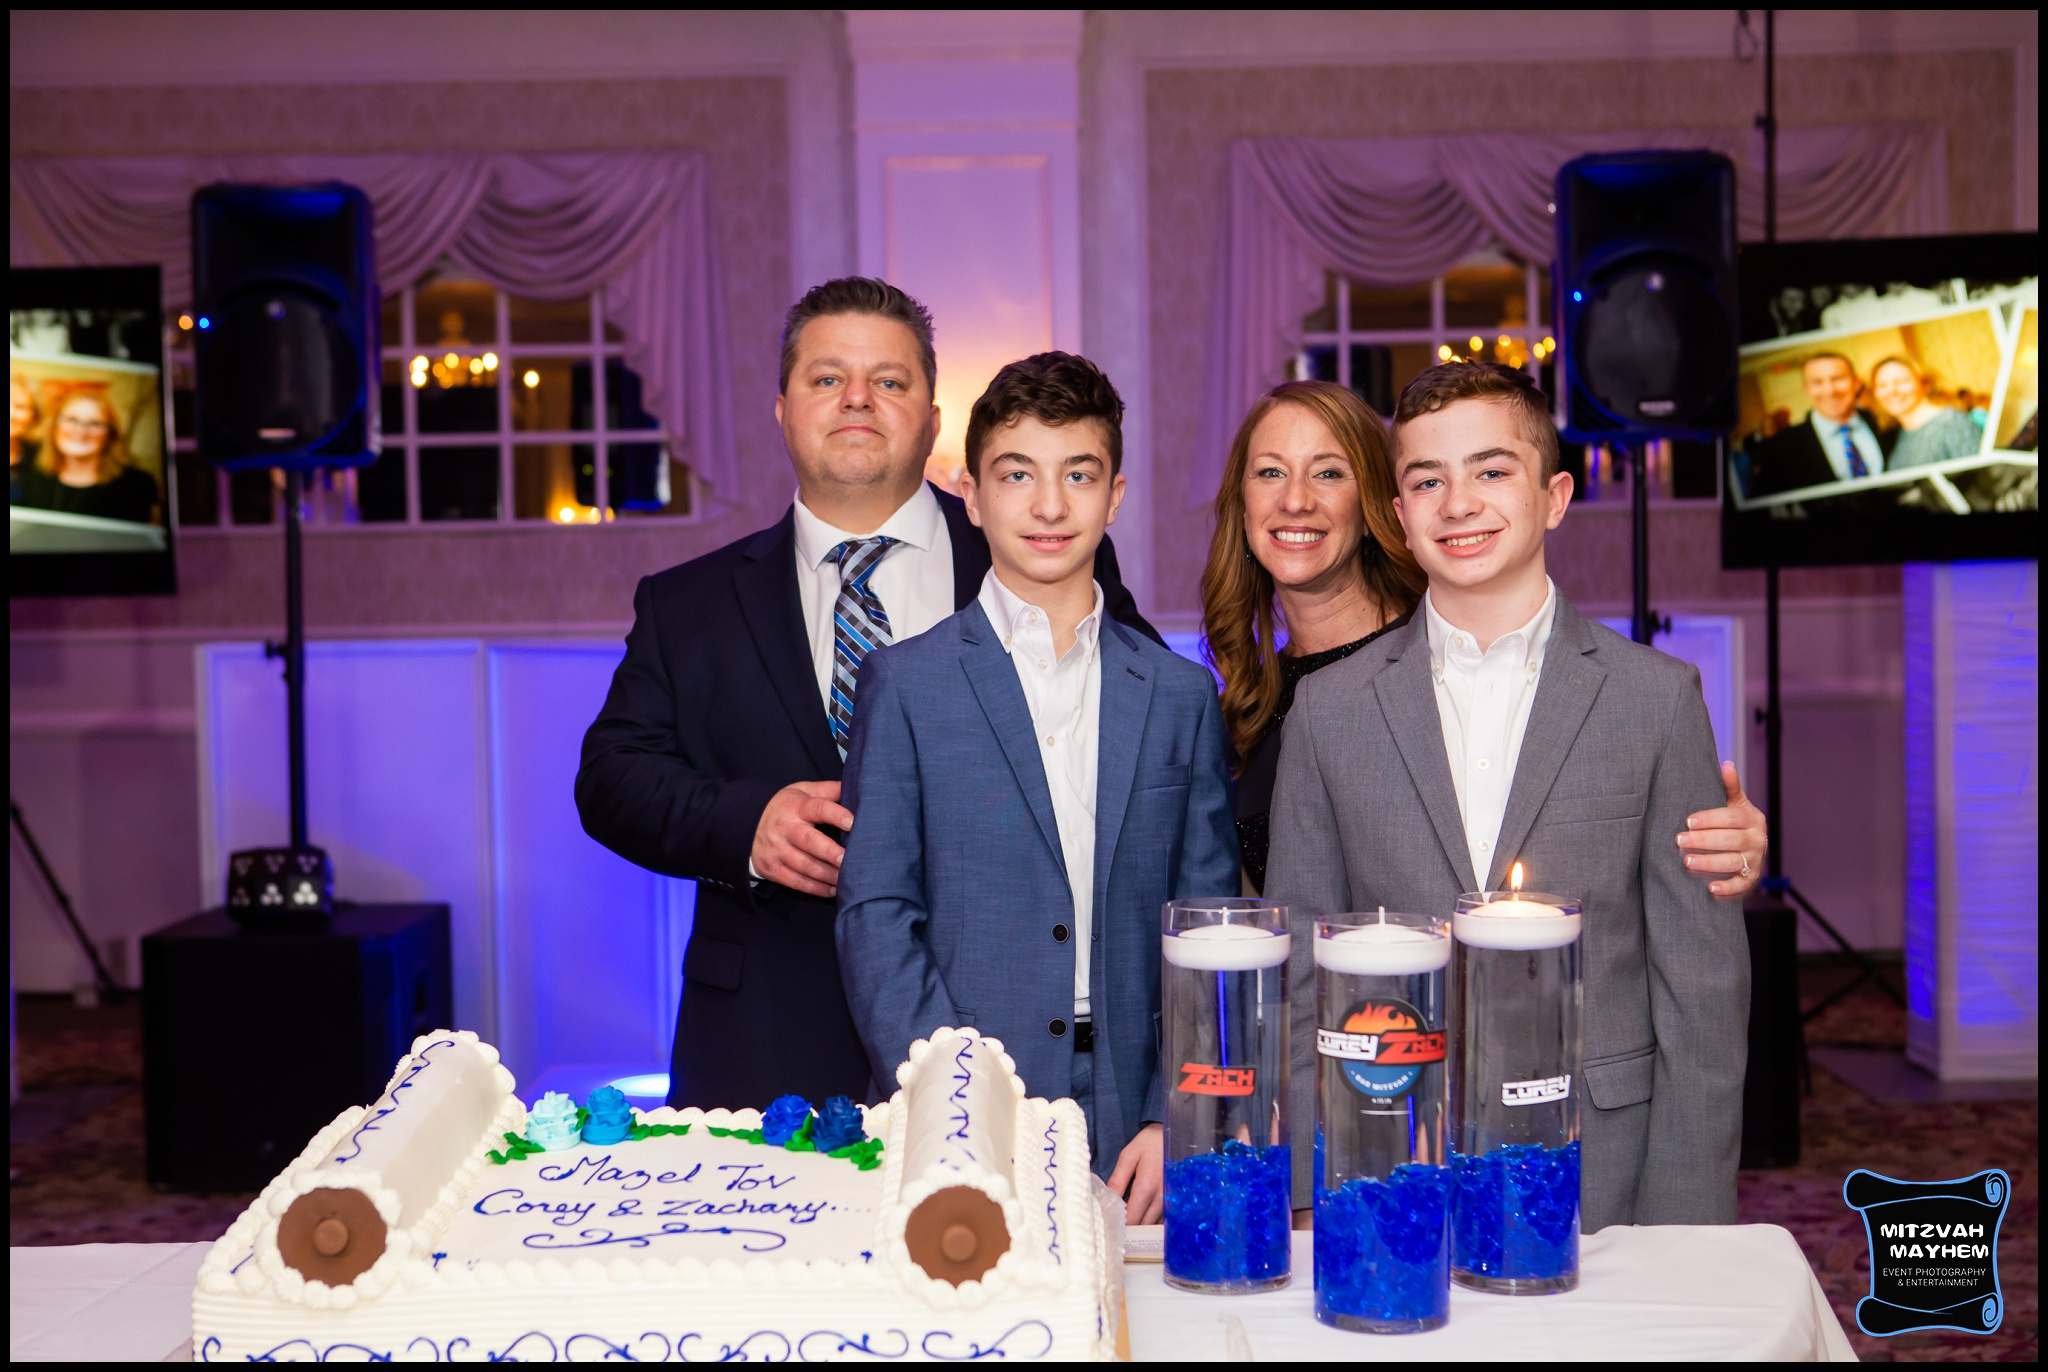 nj-mitzvah-photographer-bridgewater-manorl-17.JPG